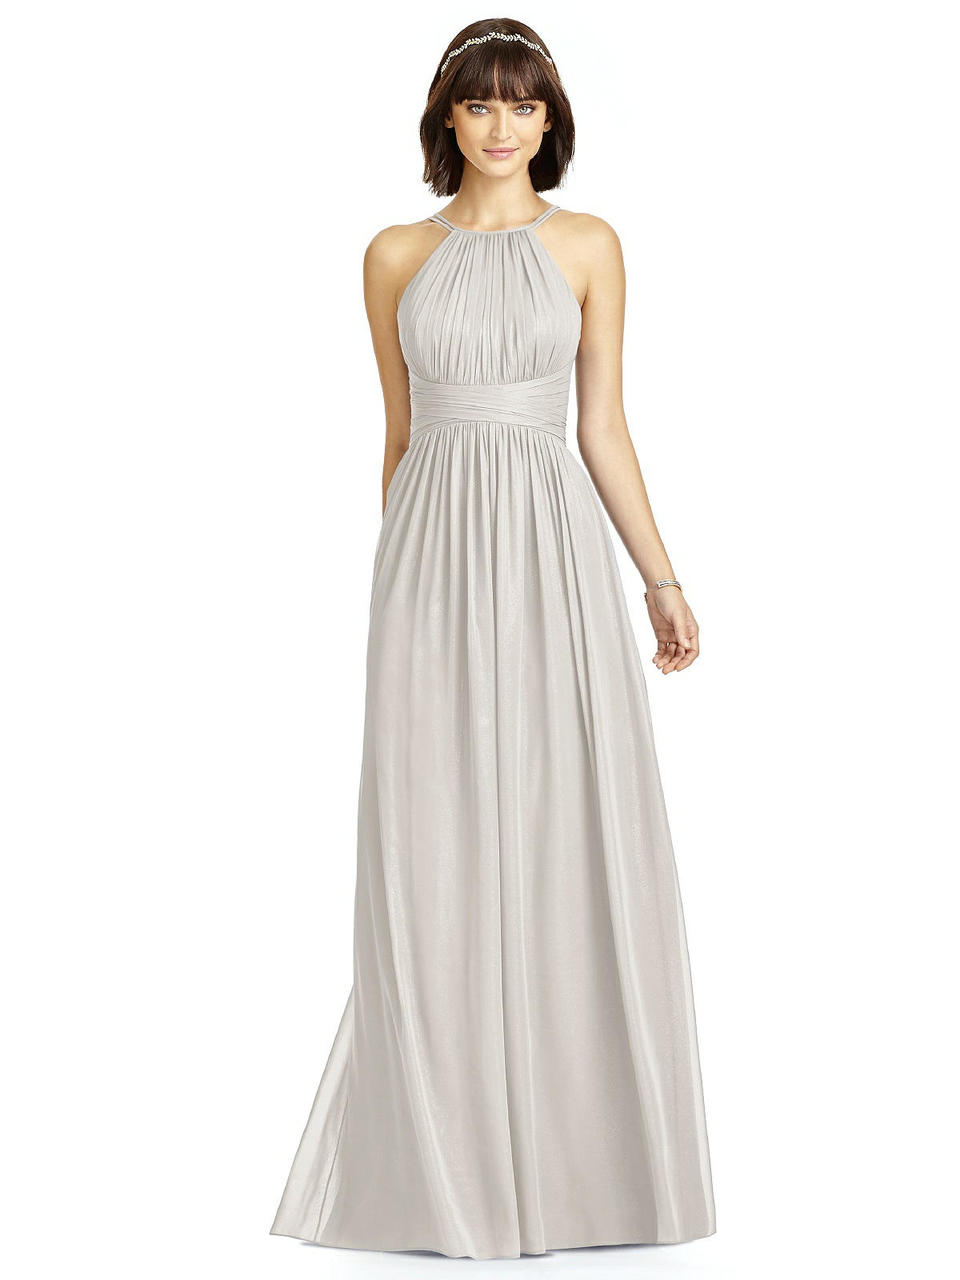 Full length lux shimmer dress w/ modified halter neckline and open back. Spaghetti straps from halter create v-detail at back. Shirred bodice and midriff. Shirred skirt.